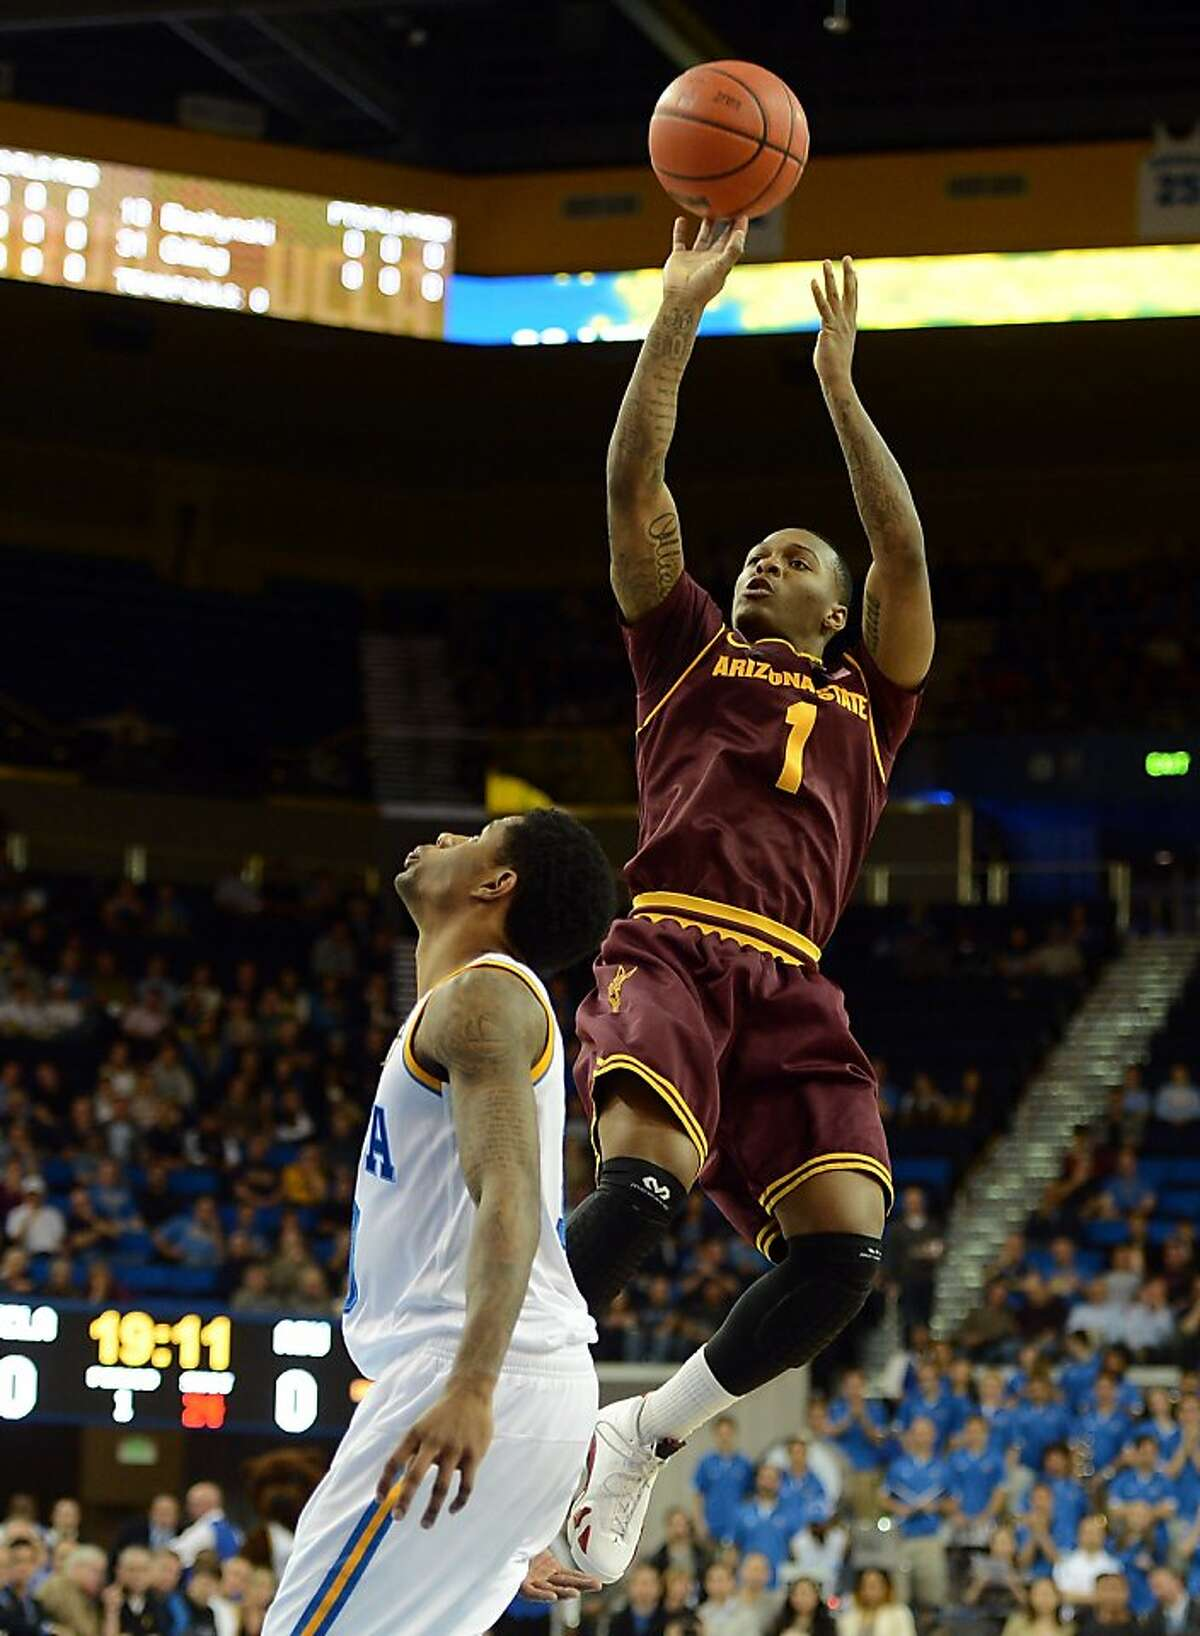 LOS ANGELES, CA - FEBRUARY 27: Jahii Carson #1 of the Arizona State Sun Devils shoots a jumper over Larry Drew II #10 of the UCLA Bruins at Pauley Pavilion on February 27, 2013 in Los Angeles, California. (Photo by Harry How/Getty Images)